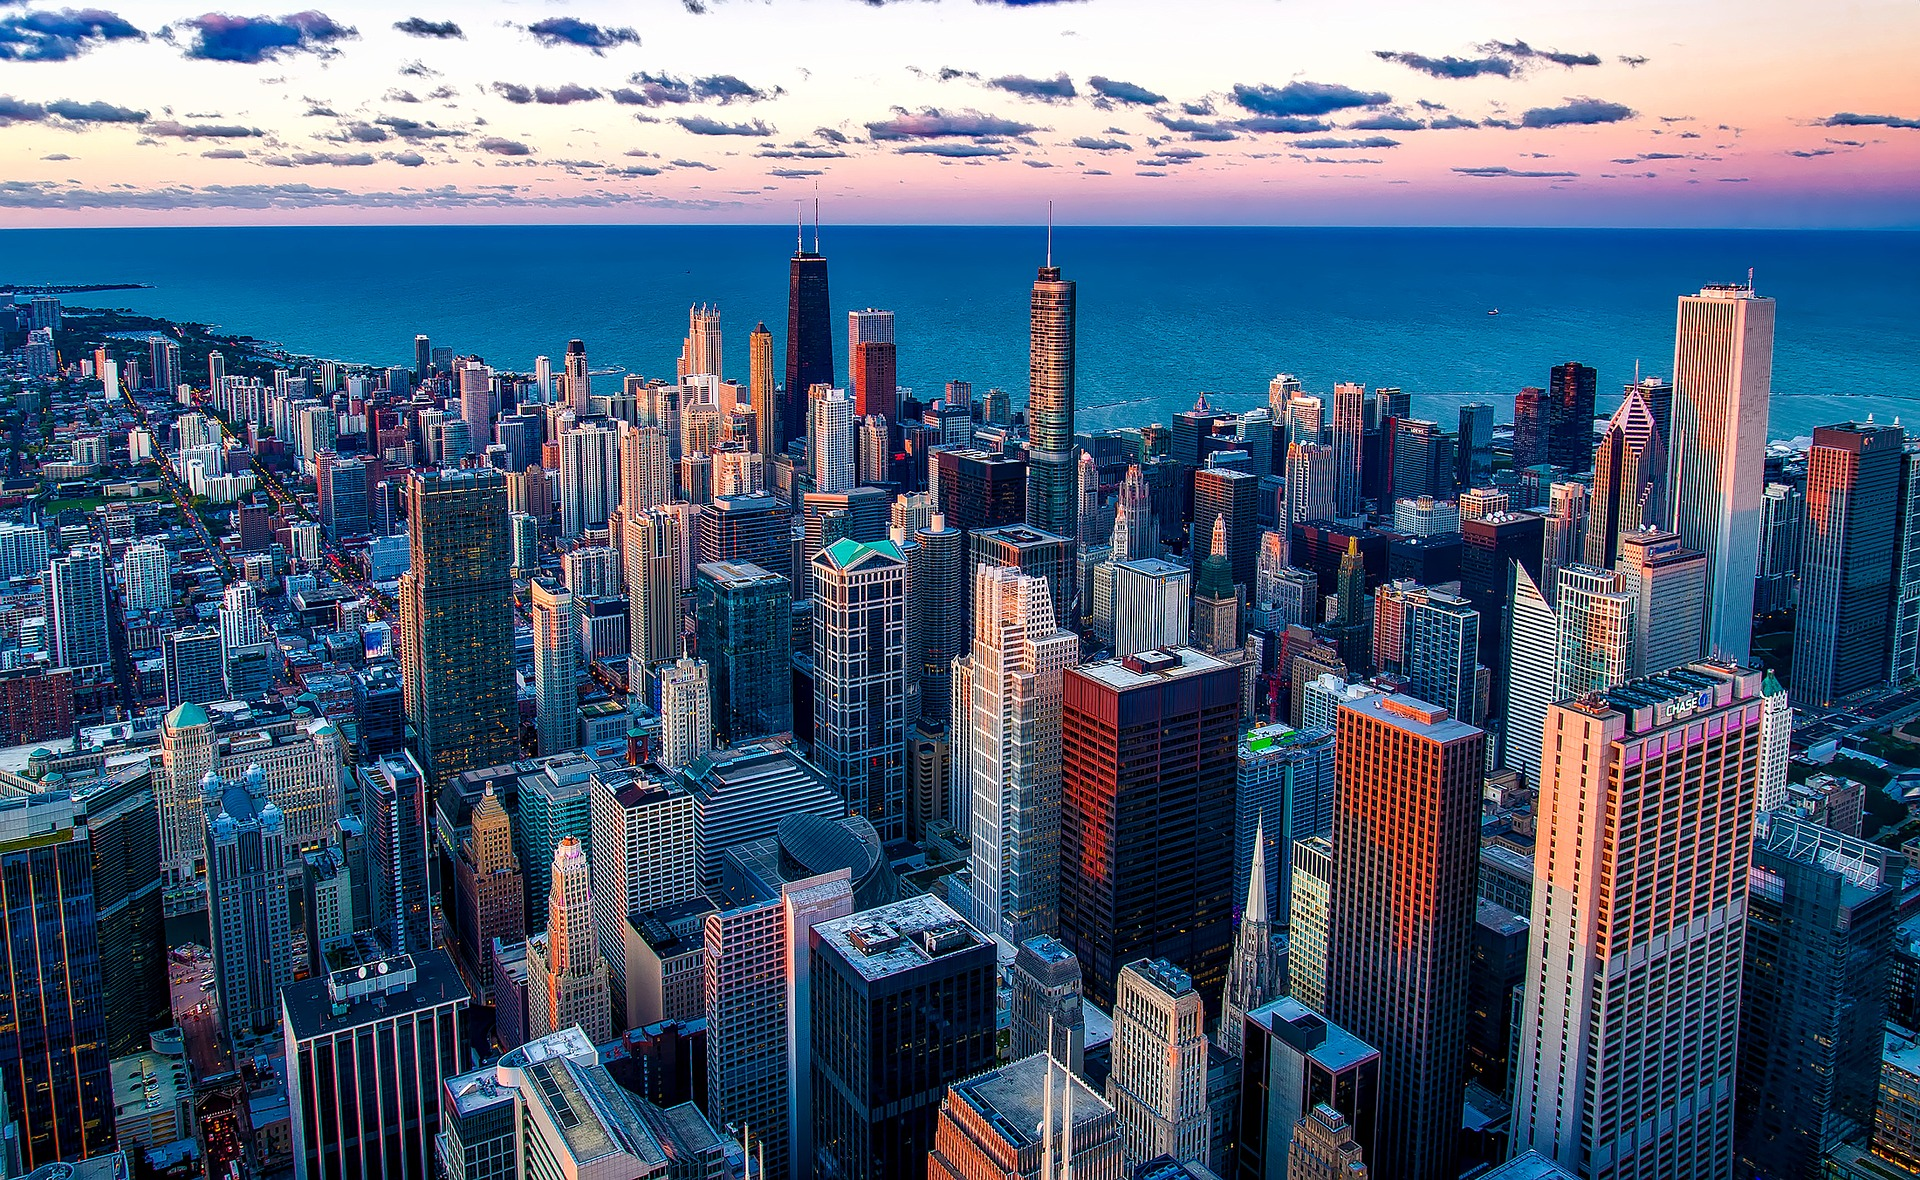 Chicago, Illinois with Lake Michigan in background